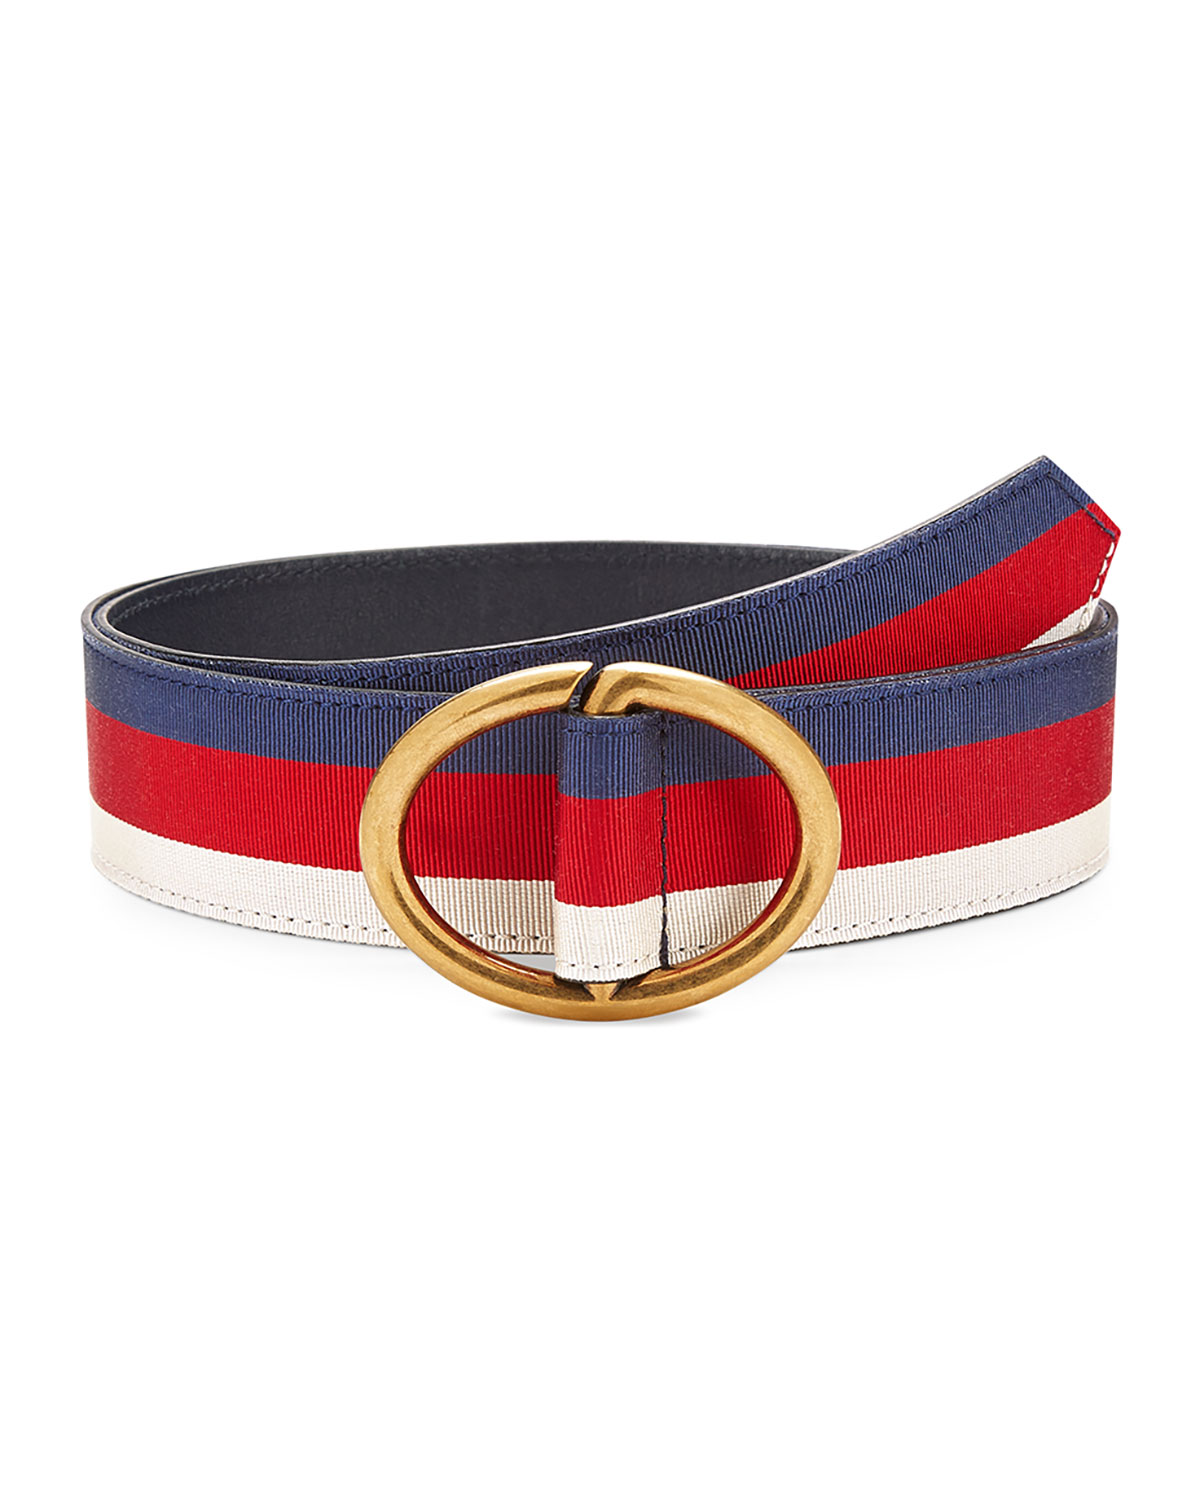 1d8ba43aa18 Gucci Men s Web Belt with Gold Buckle